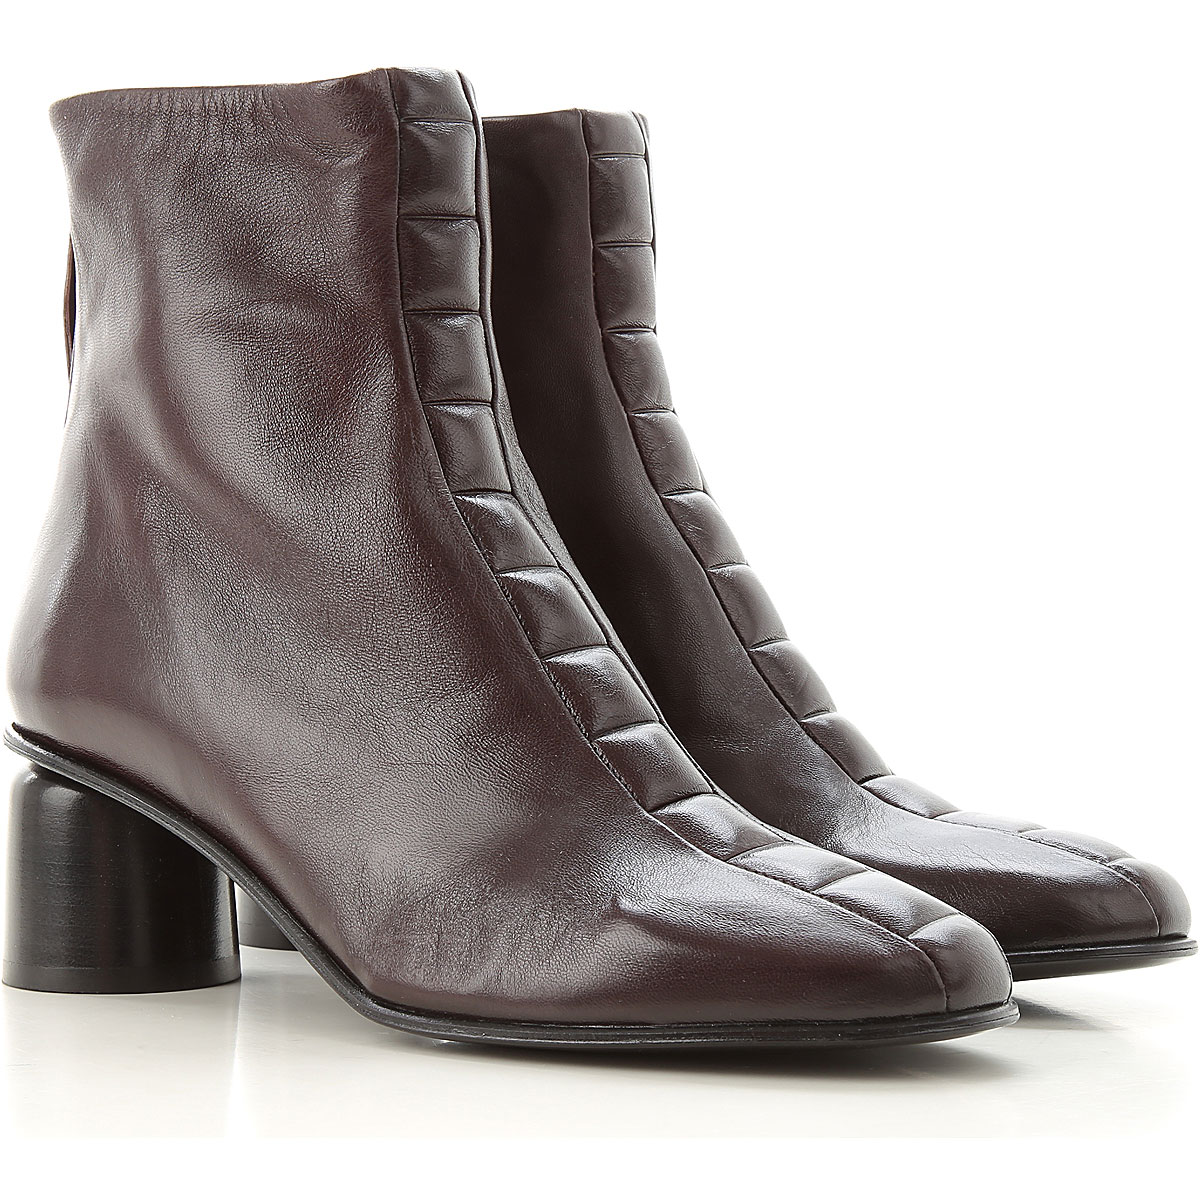 Halmanera Boots for Women, Booties On Sale, Brown, Leather, 2019, 5 6 6.5 7 8 8.5 9